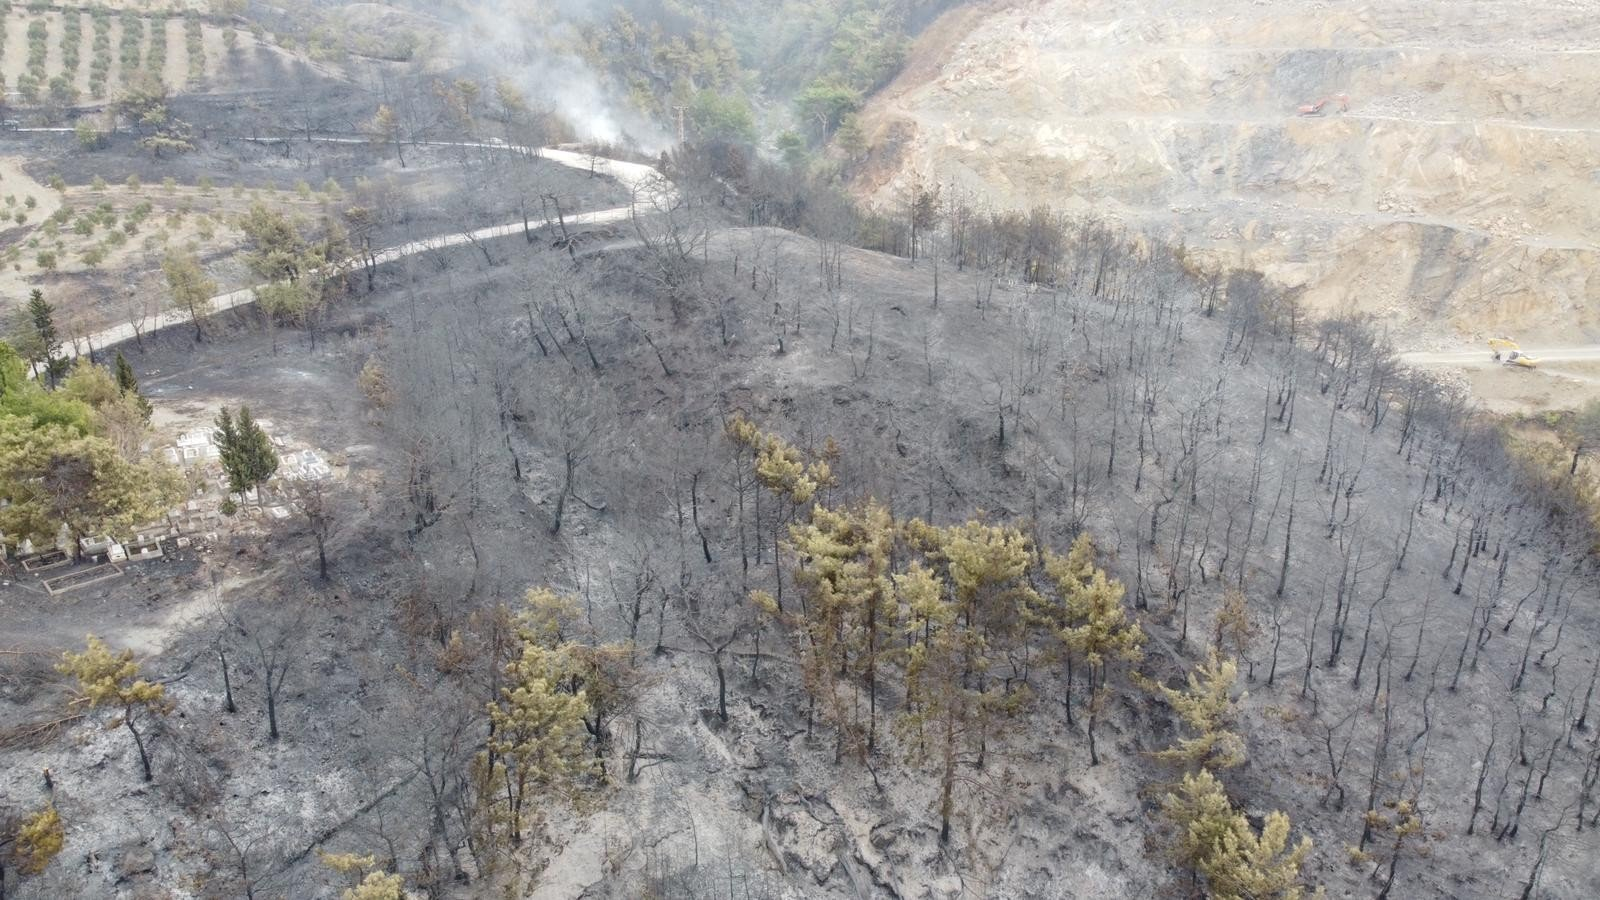 An aerial view of the area damaged by the forest fire, in Hatay, southern Turkey, Oct. 28, 2020. (İHA Photo)